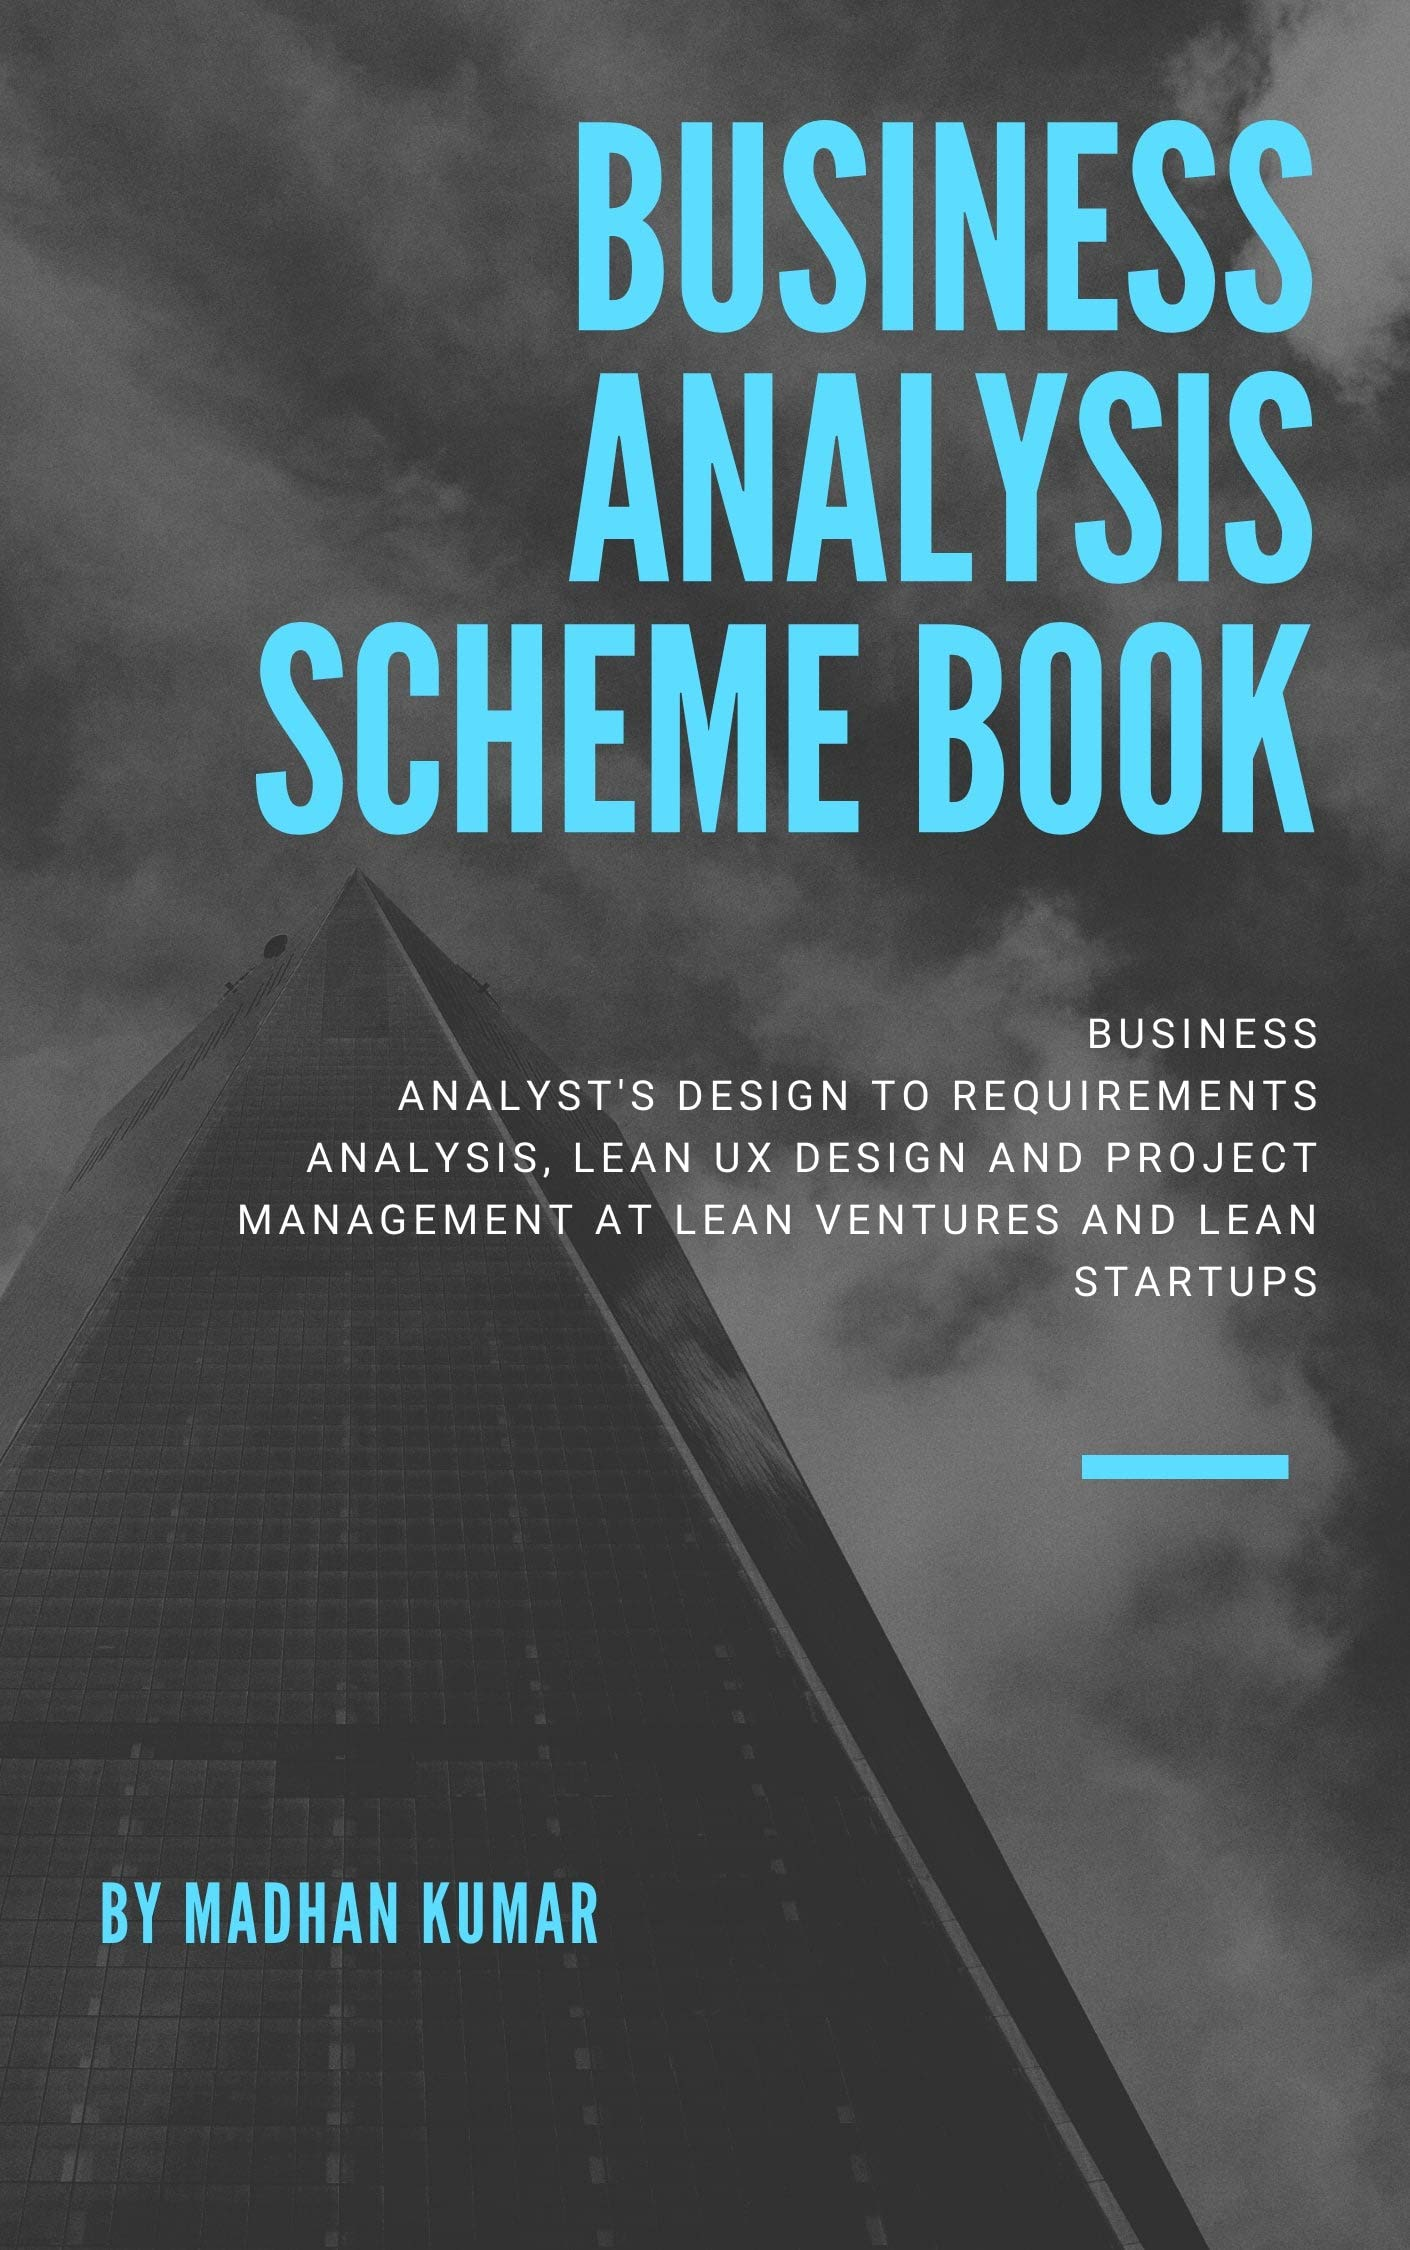 Business Analysis Scheme Book: Business Analyst's Design to Requirements Analysis, Lean UX Design and Project Management at Lean Ventures and Lean Startups